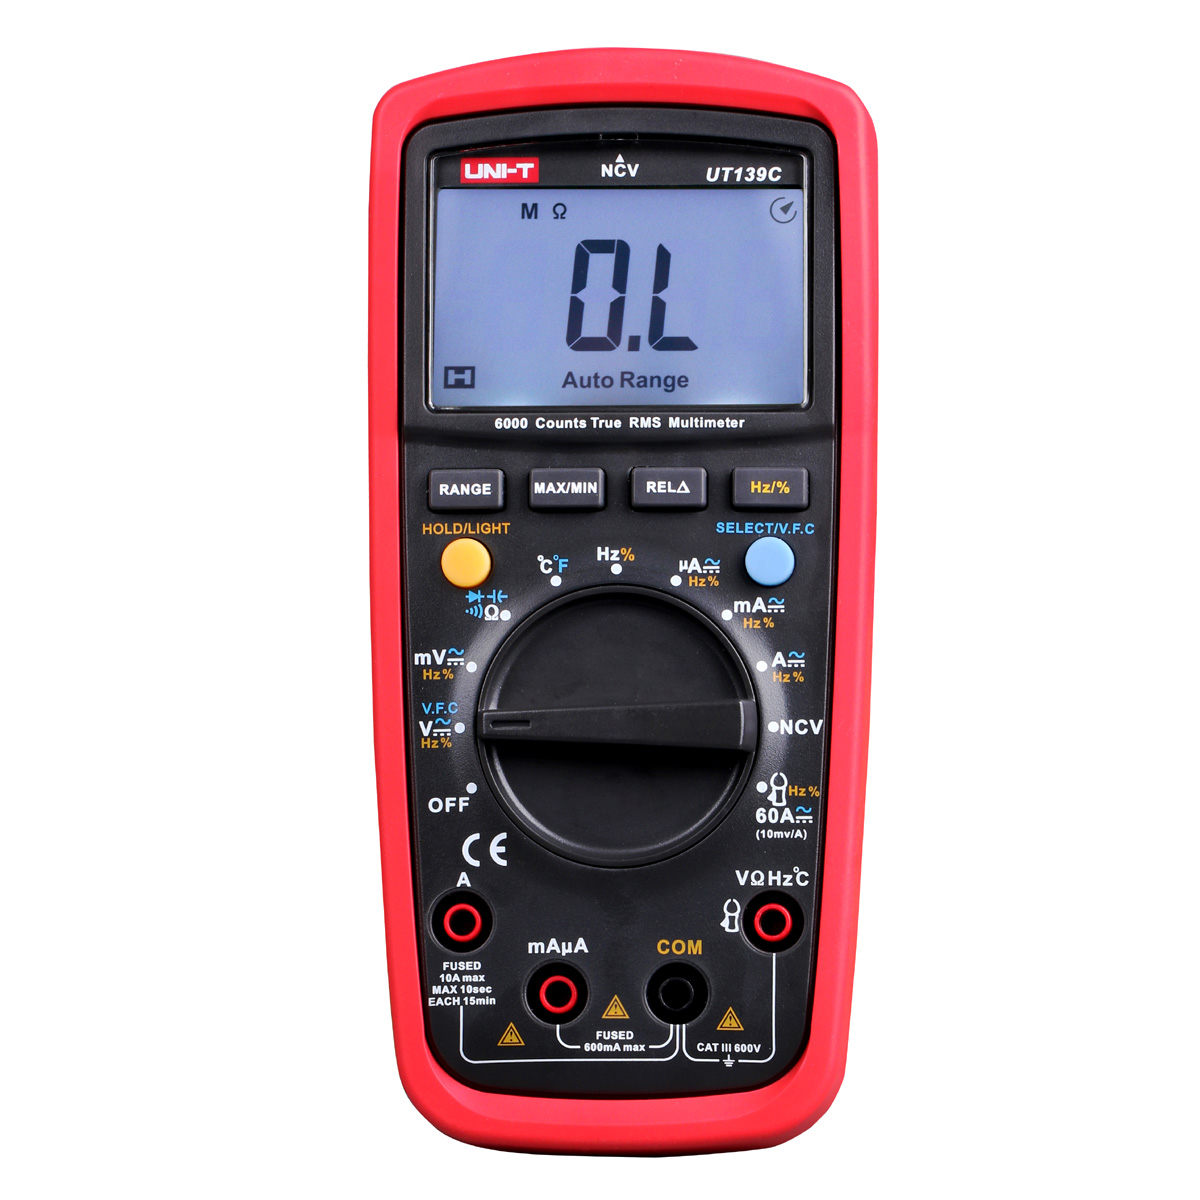 M102 UNI-T UT139C True RMS 2.6 LCD Digital Multimeter DMM Electrical Handheld Tester Multimetro LCR Meter Ammeter Multitester uni t ut139c true rms digital multimeter handheld electrical lcr voltage current meter tester multimetro ammeter multitester